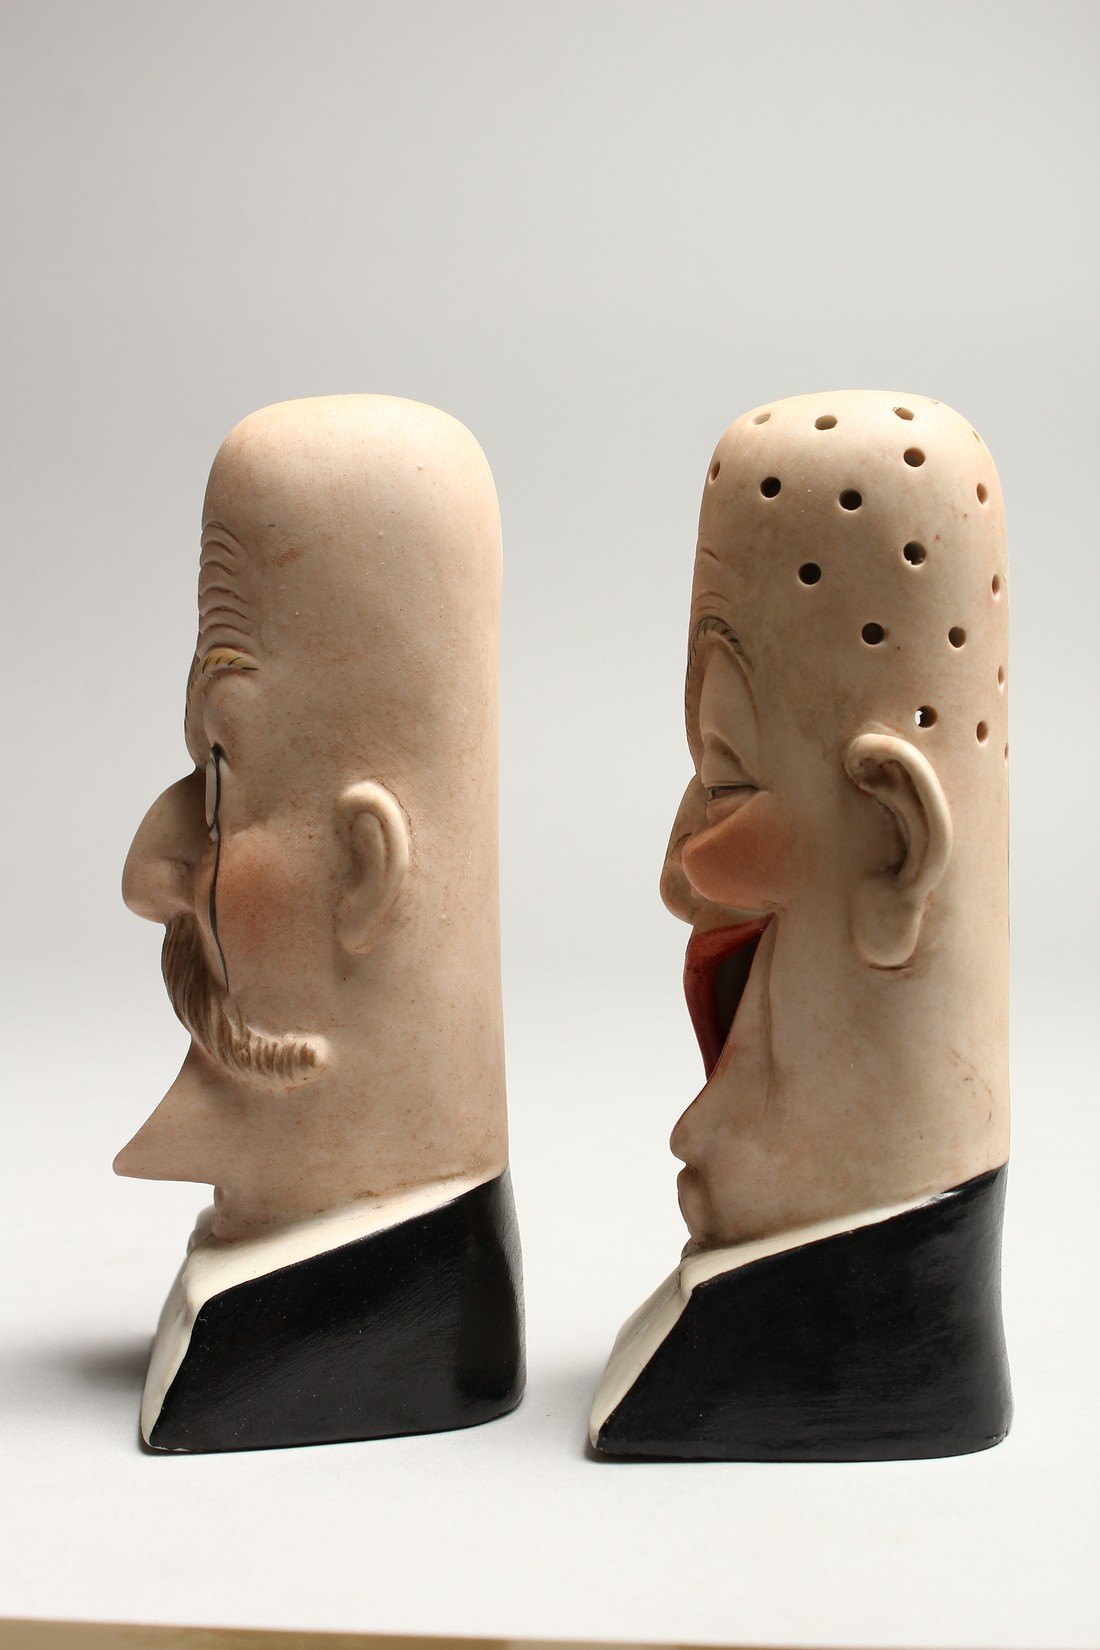 A PAIR OF POTTERY MEN'S HEADS ASHTRAYS. 5in high. - Image 2 of 5